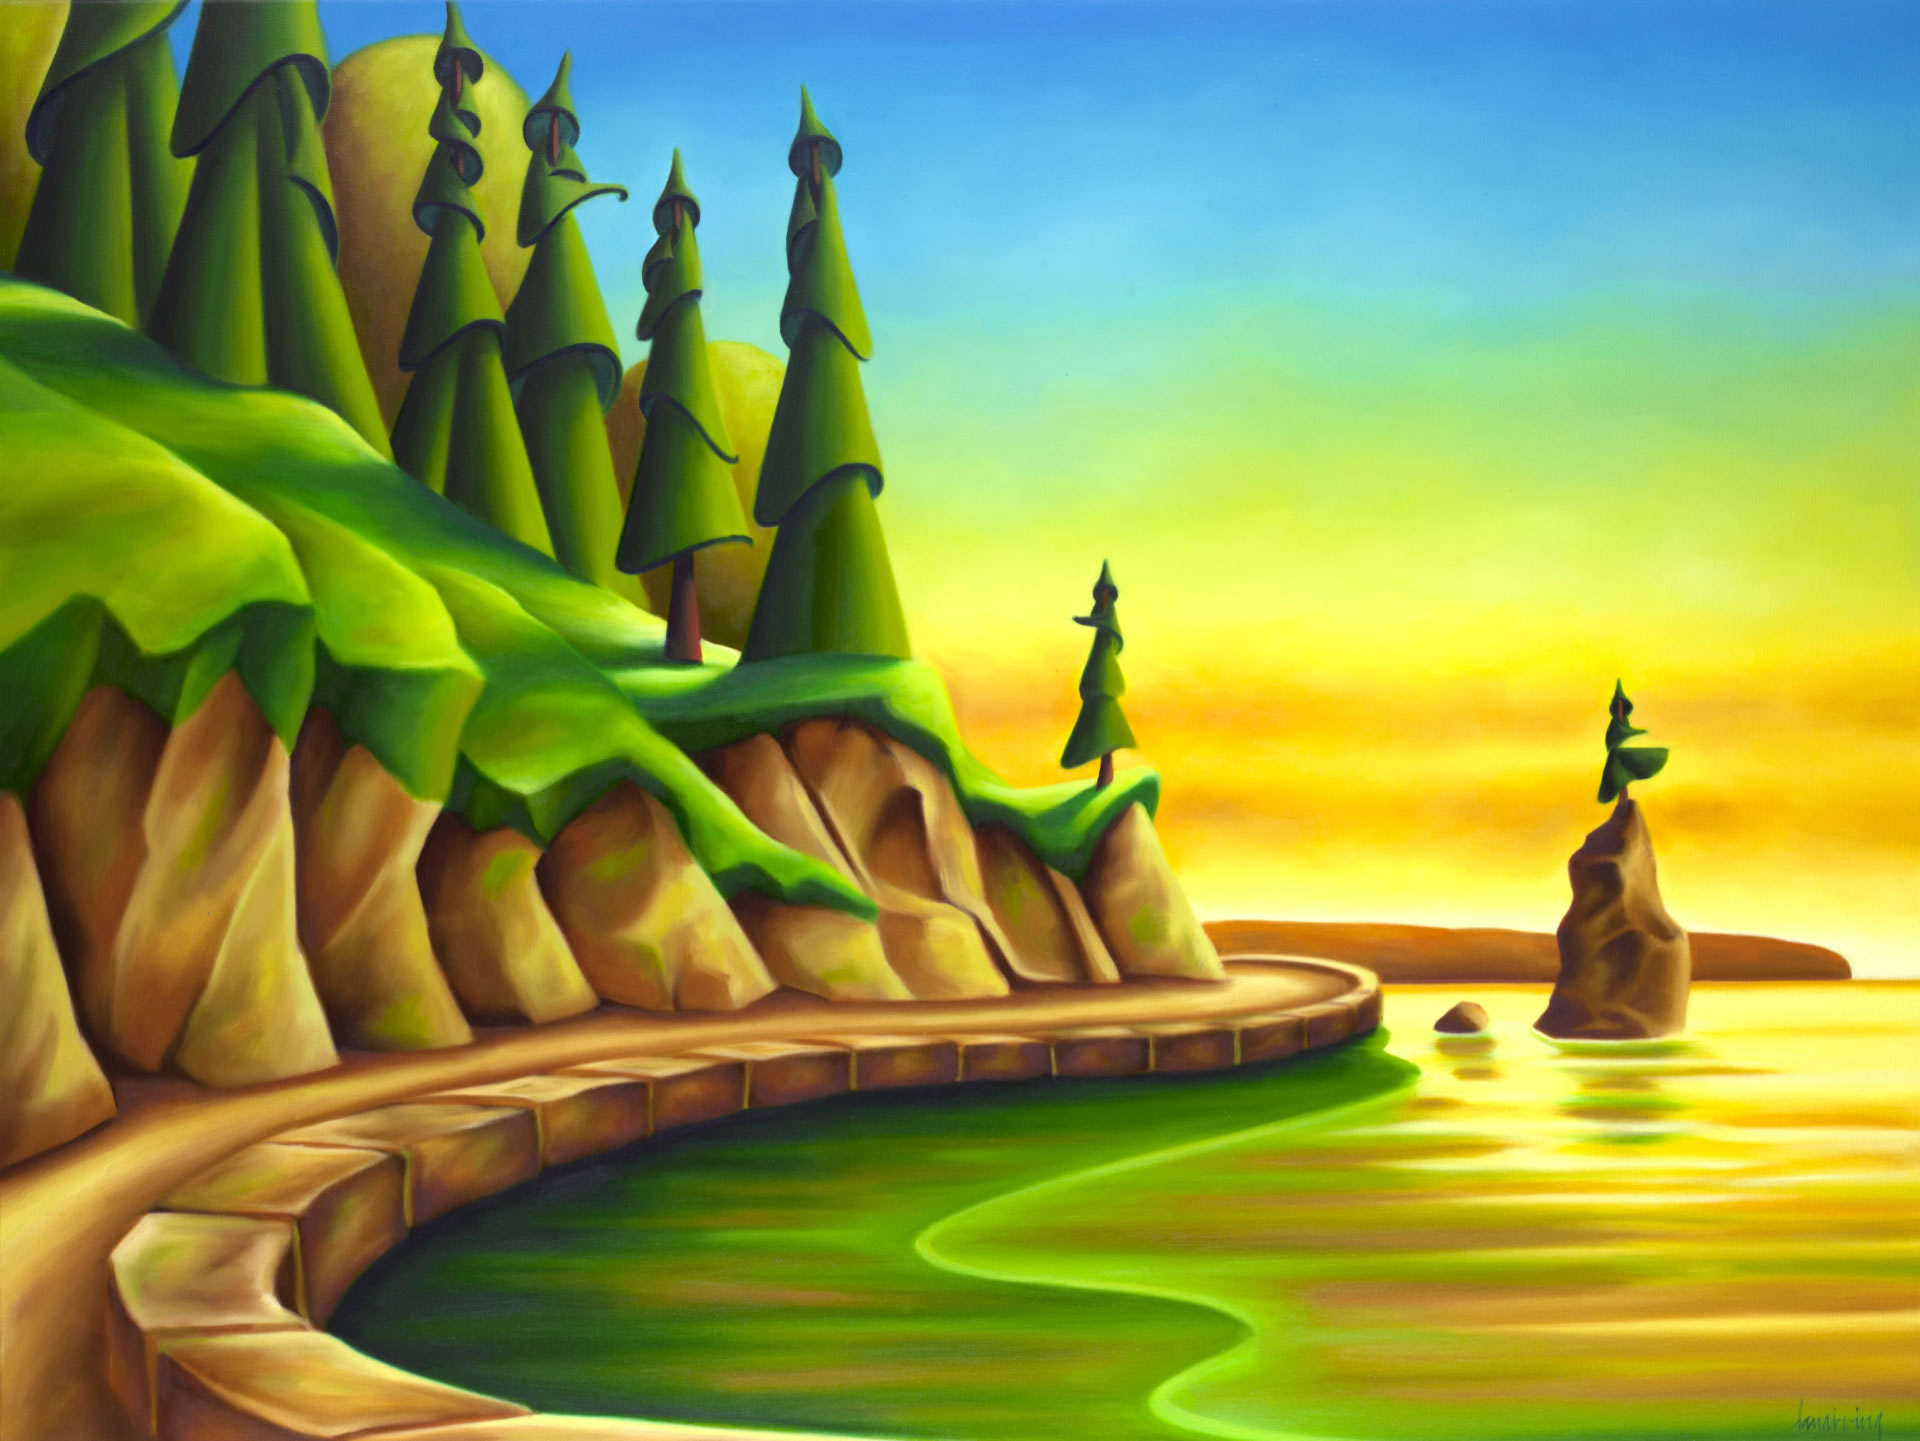 Dana-Irving-The-Long-Day-Is-Over-2021-30x40-Oil-On-Canvas-Online-Art-Galleries